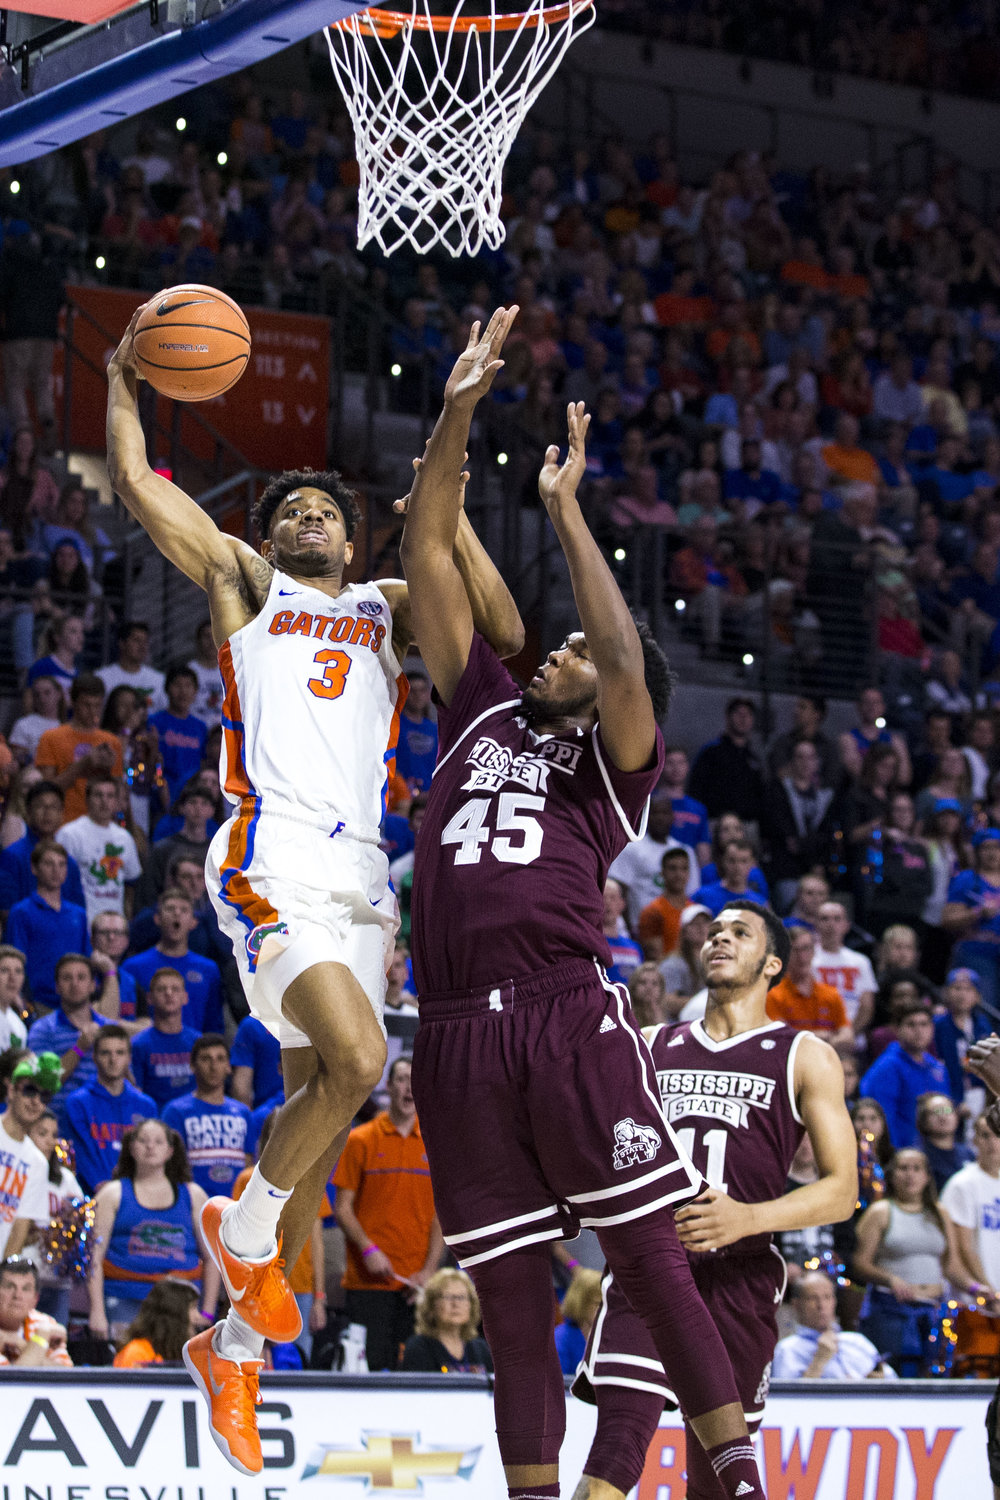 Florida Gator Jalen Hudson (3) goes in for a layup as Mississippi State's E.J. Datcher attempts to block him during the Florida vs Mississippi State game on January 20, 2018. The Gators beat the Bulldogs 71-54.